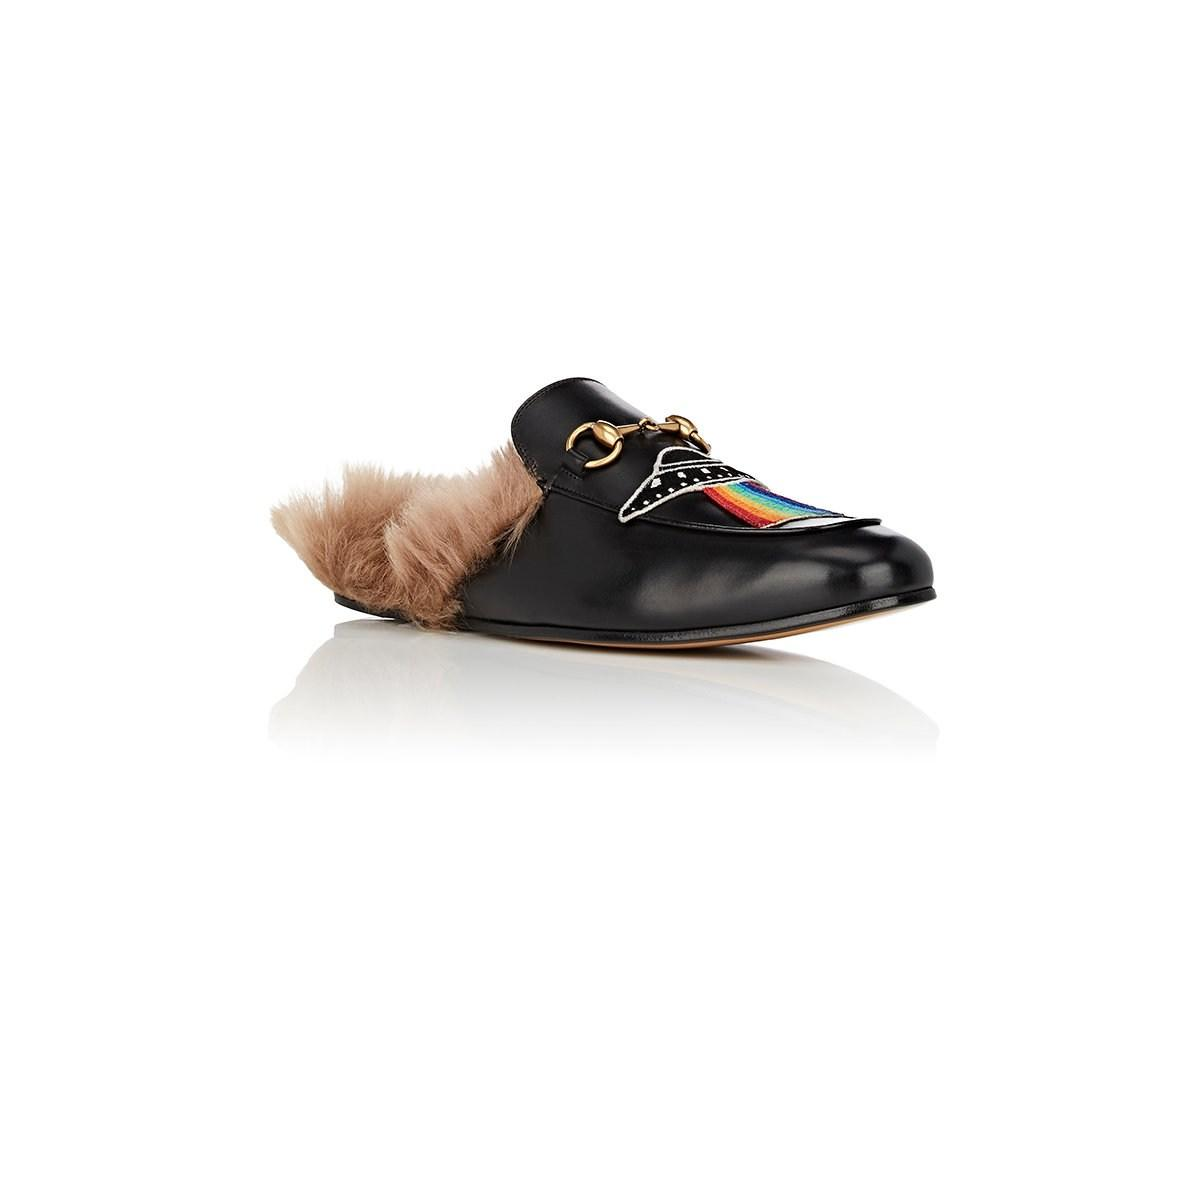 f271ddbba6e Gucci - Black Princetown Leather Slippers for Men - Lyst. View fullscreen